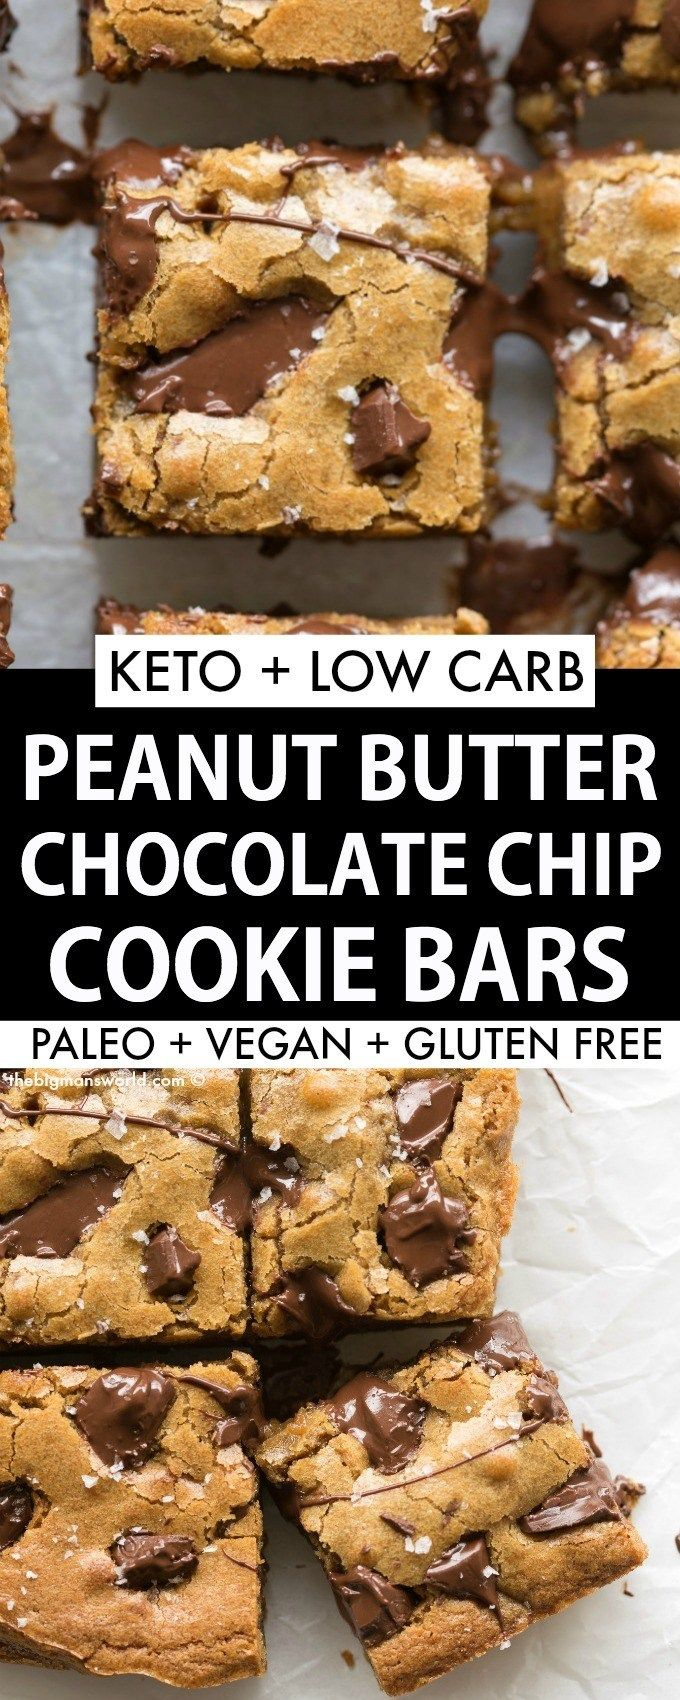 Keto Peanut Butter Chocolate Chip Cookie Bars are a keto, vegan and low carb dessert that is soft, chewy and gooey in one! The perfect paleo and sugar free dessert! #ketodessert